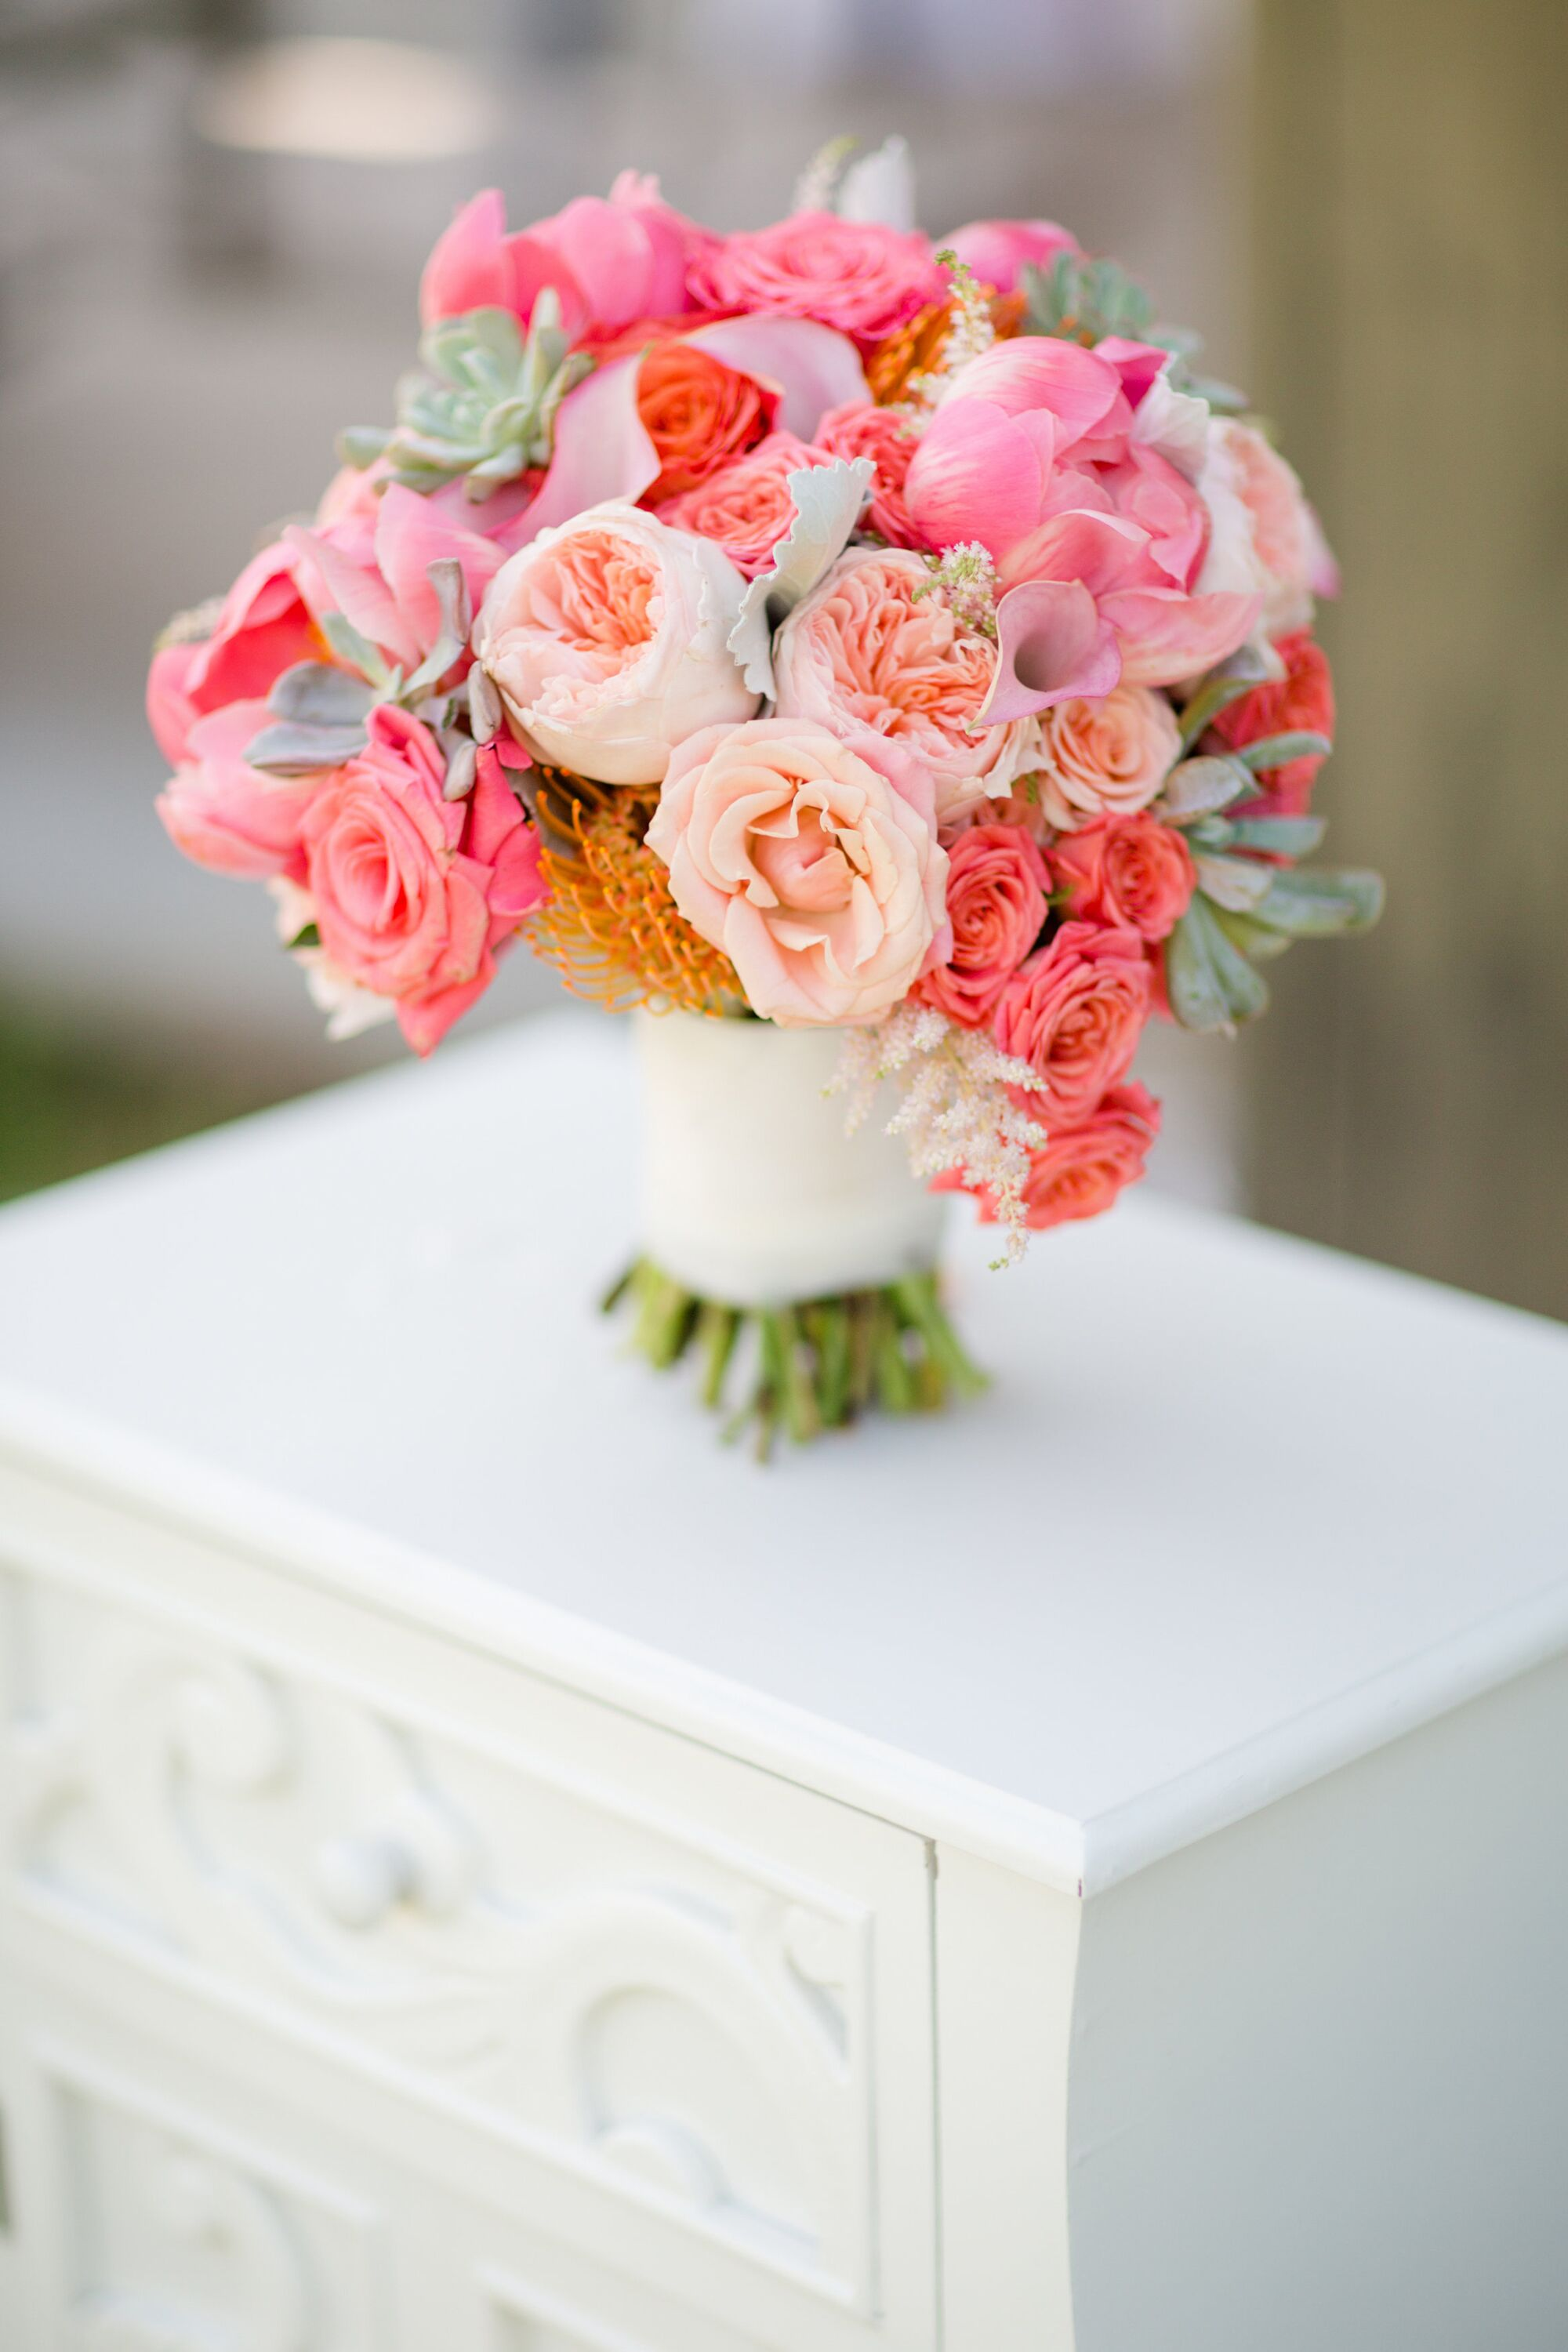 Wedding Flowers: Finding The Right Bridal Bouquet Size